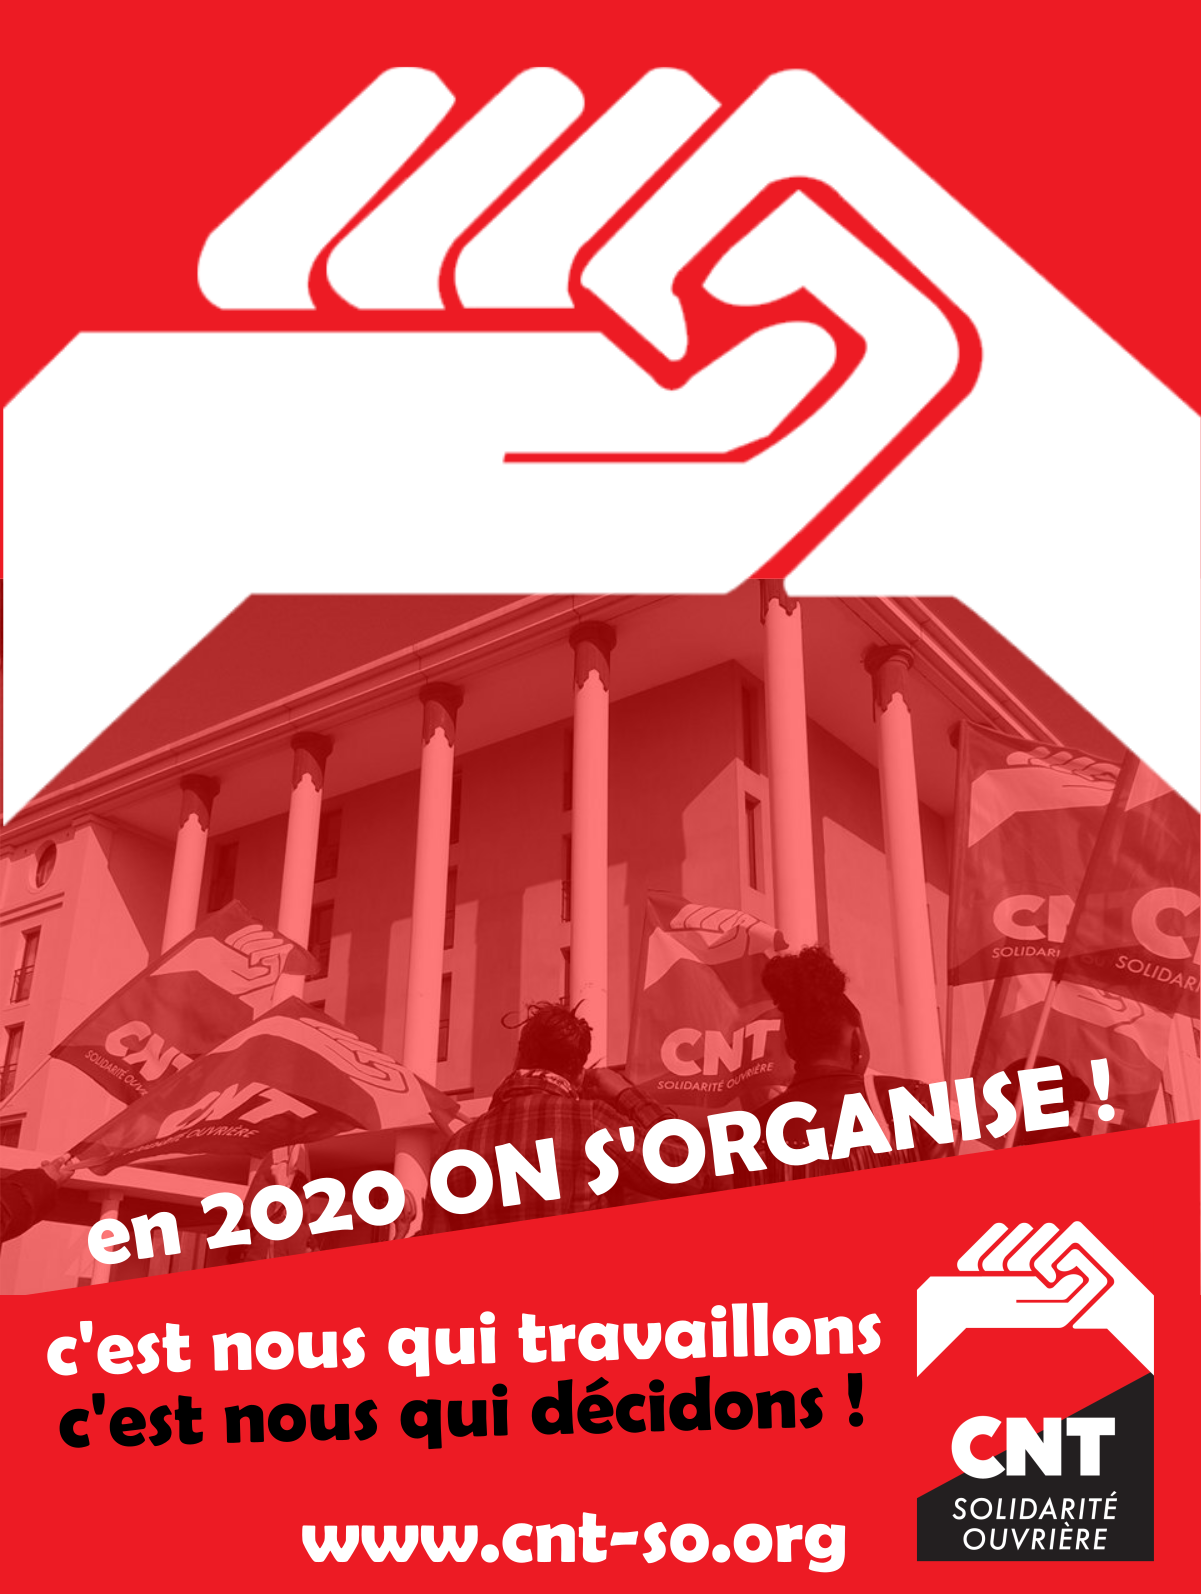 cnt_so_on_s_organise_2020_.png